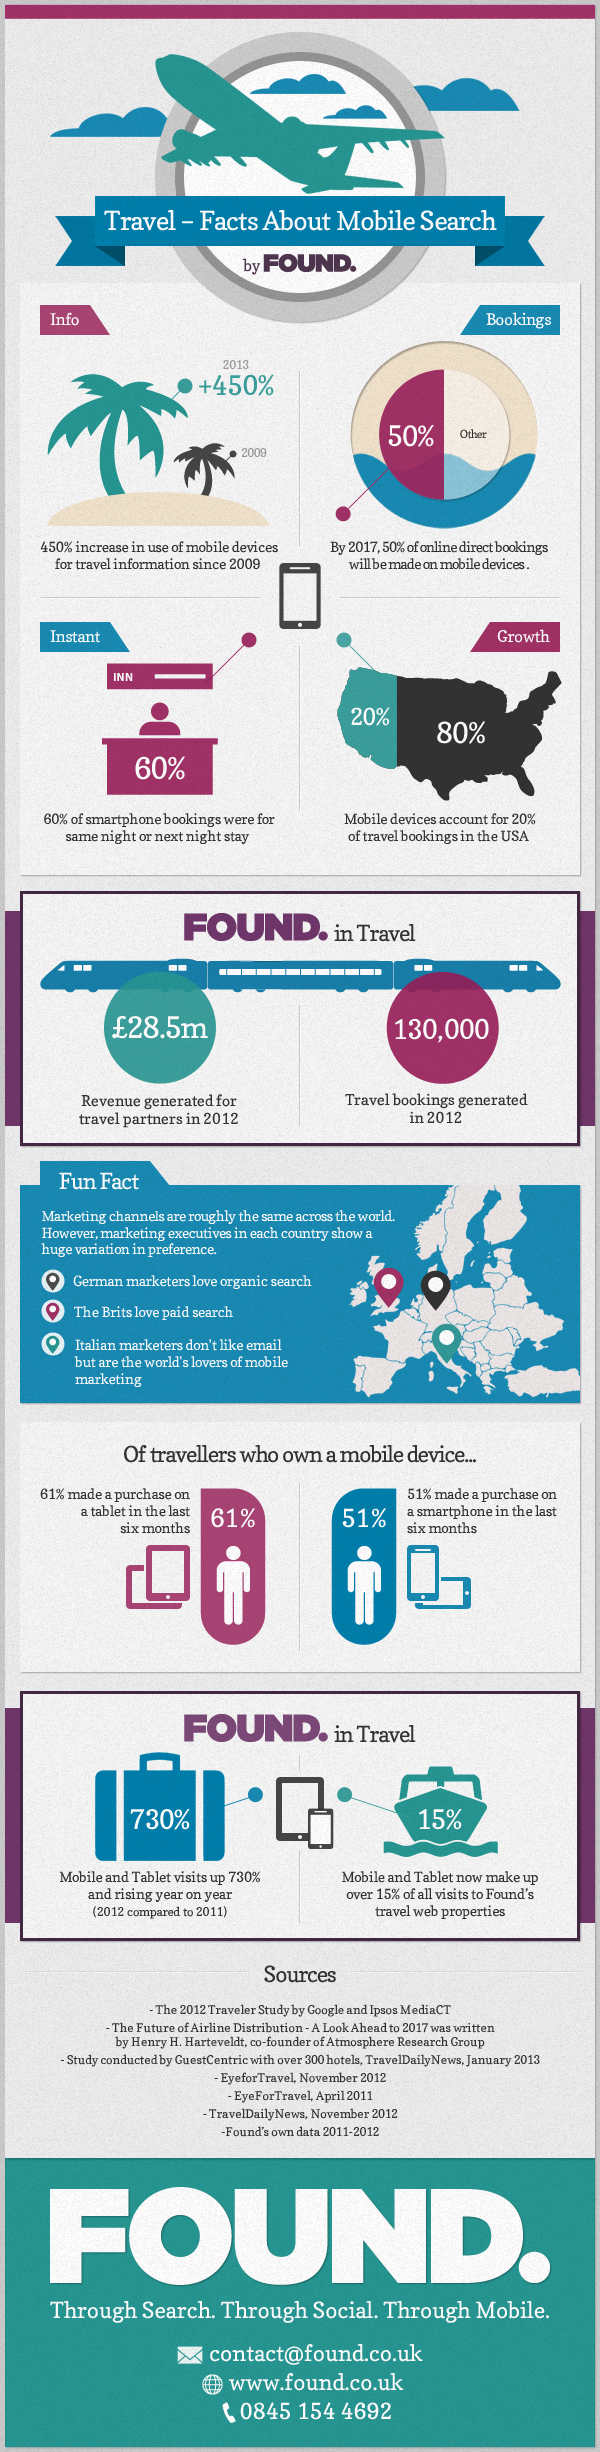 Travel - Facts about Mobile Search